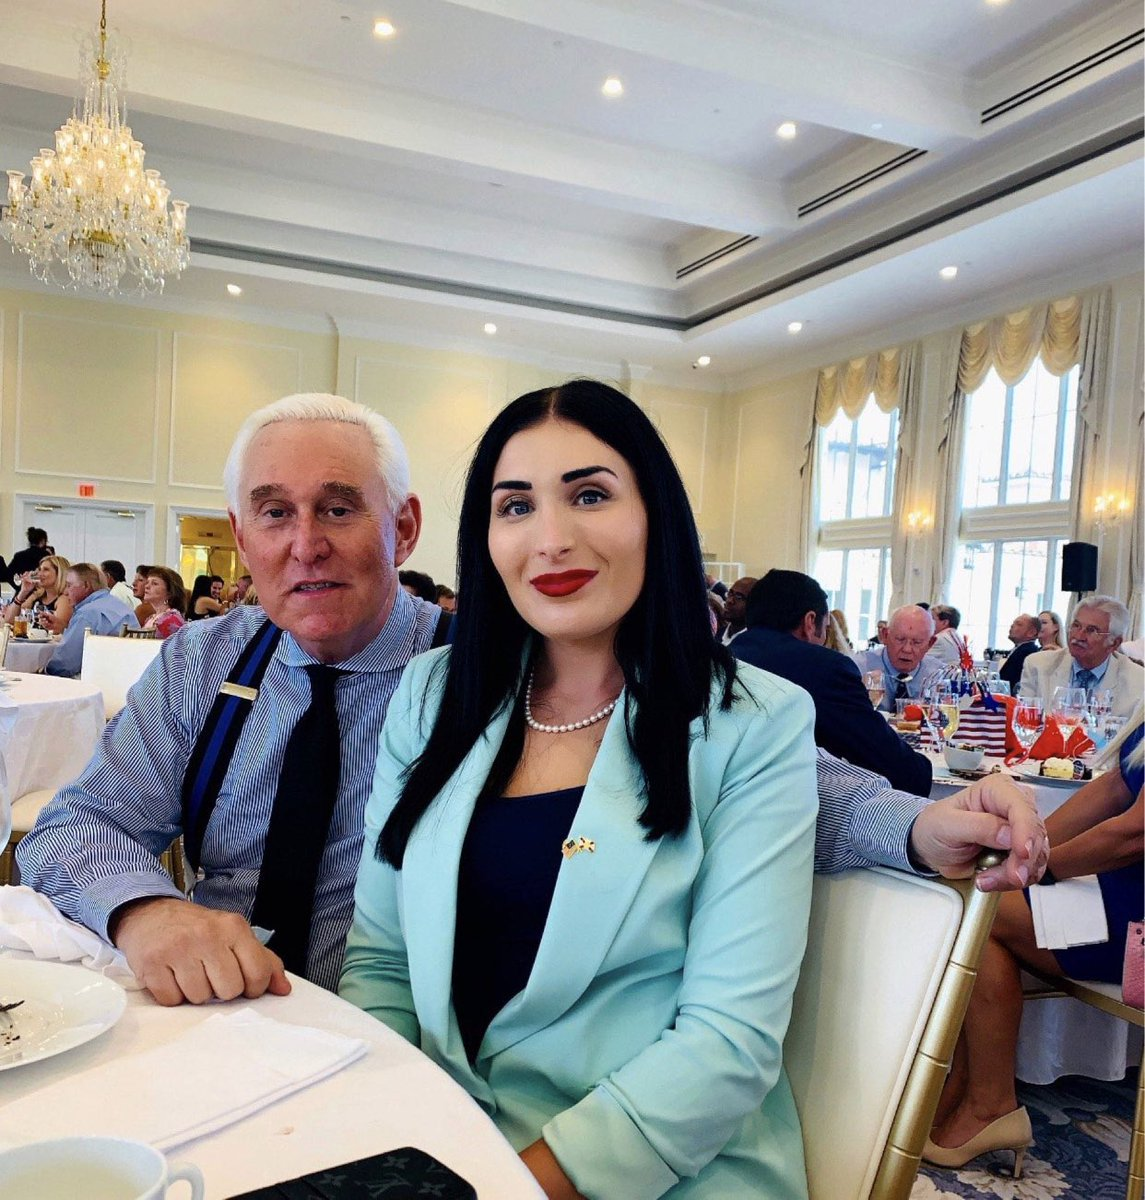 Congratulations to Laura Loomer for Congress  endorsed by @RepMattGaetz today at the GOP luncheon with @RogerStone Florida Vote for Laura Loomer Primary's are important Aug 18